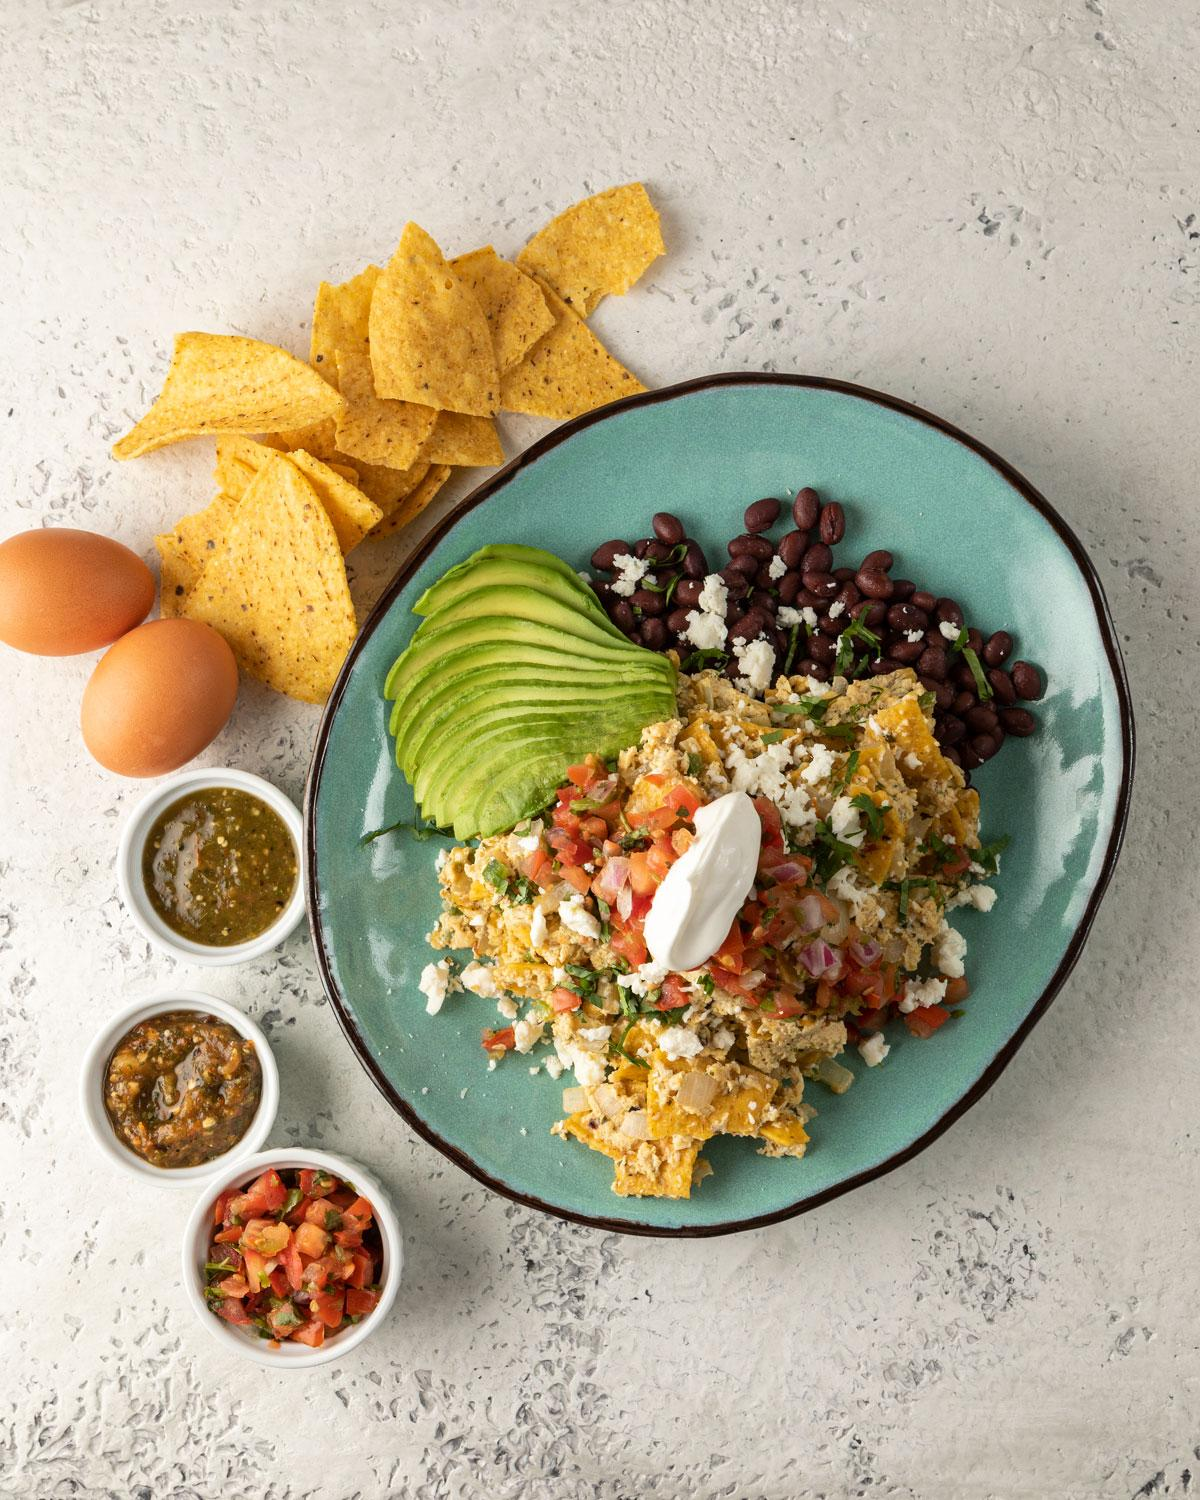 Migas with chips, salsas and avocado